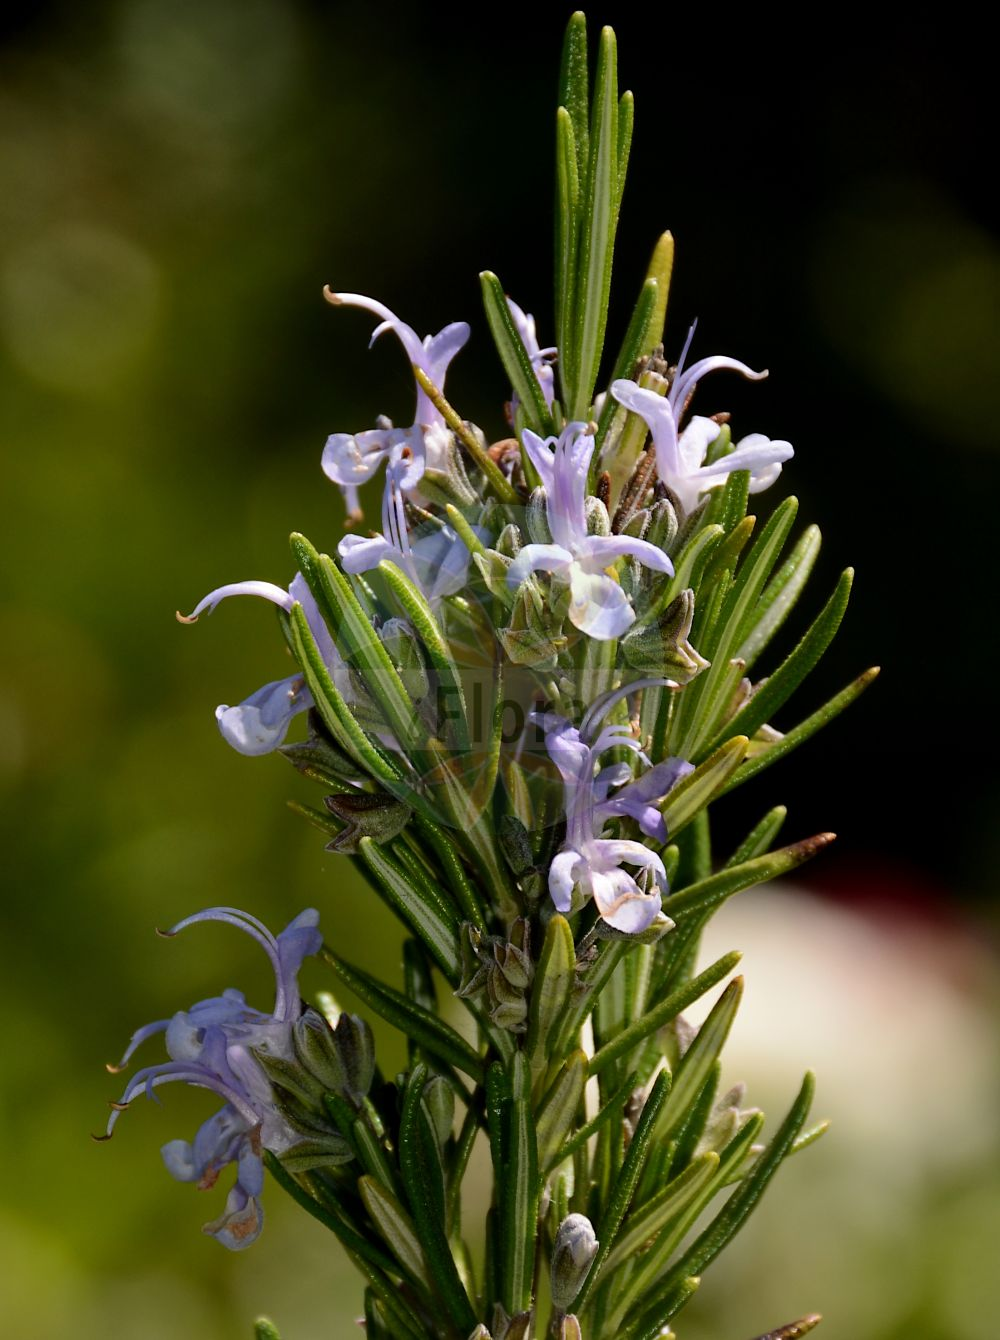 Foto von Rosmarinus officinalis (Echter Rosmarin - Rosemary). Das Bild zeigt Blatt und Bluete. Das Foto wurde in Dijon, Burgund, Frankreich aufgenommen. ---- Photo of Rosmarinus officinalis (Echter Rosmarin - Rosemary).The image is showing leaf and flower.The picture was taken in Dijon, Burgundy, France.(Rosmarinus officinalis,Echter Rosmarin,Rosemary,subsp. laxiflorus,Rosmarin,Garden Moorwort,Rosmarinus,Rosmarin,Rosemary,Lamiaceae,Lippenbluetengewaechse;Lippenbluetler,Nettle family,Blatt,Bluete,leaf,flower)